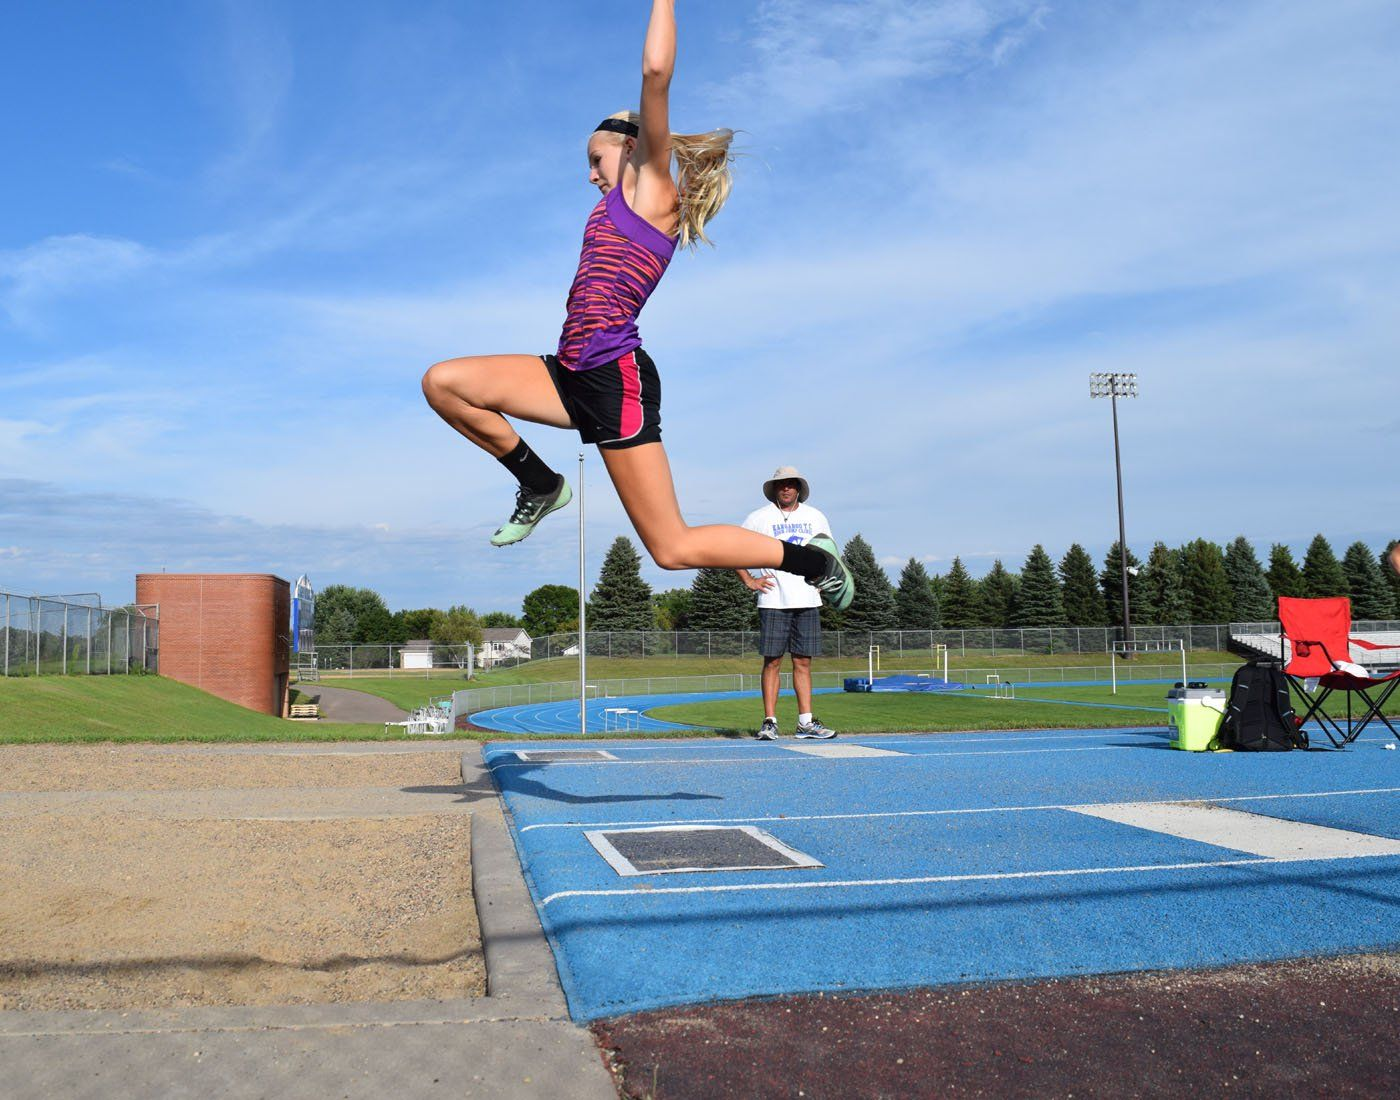 A brief description of Triple Jump to let you know the